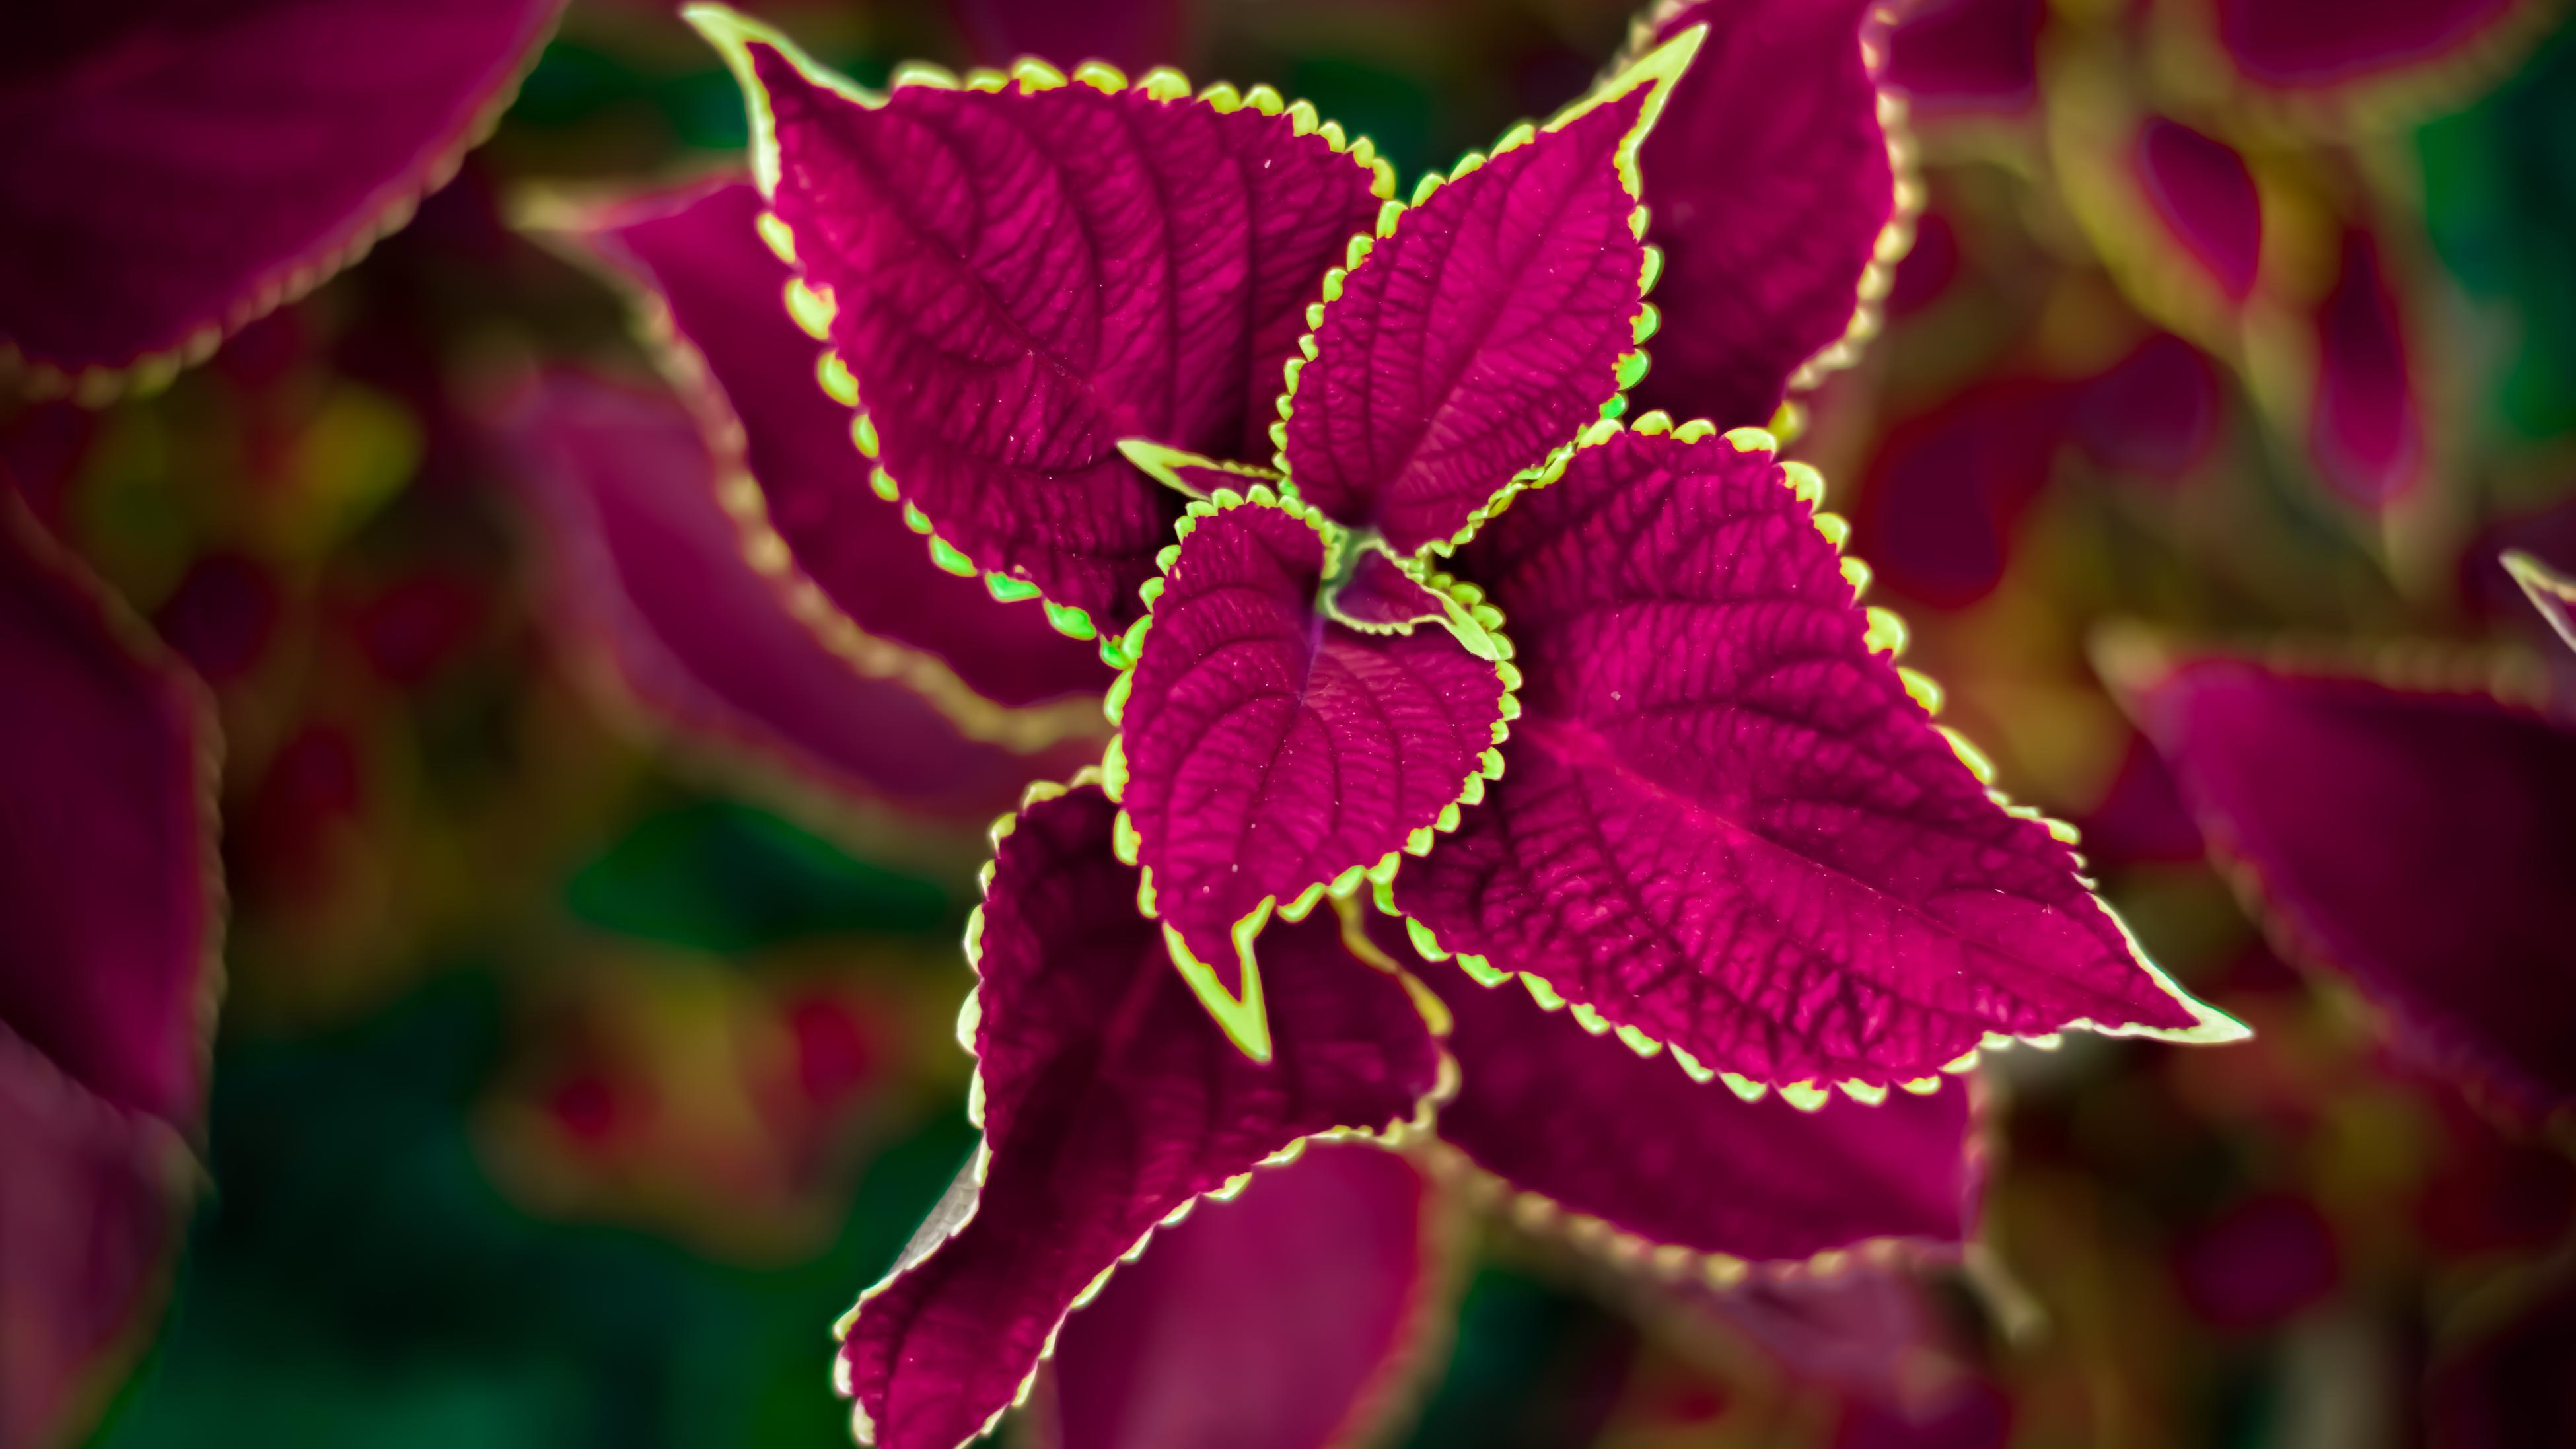 birds eye view of a deep burgundy red coleus plant with a green trim